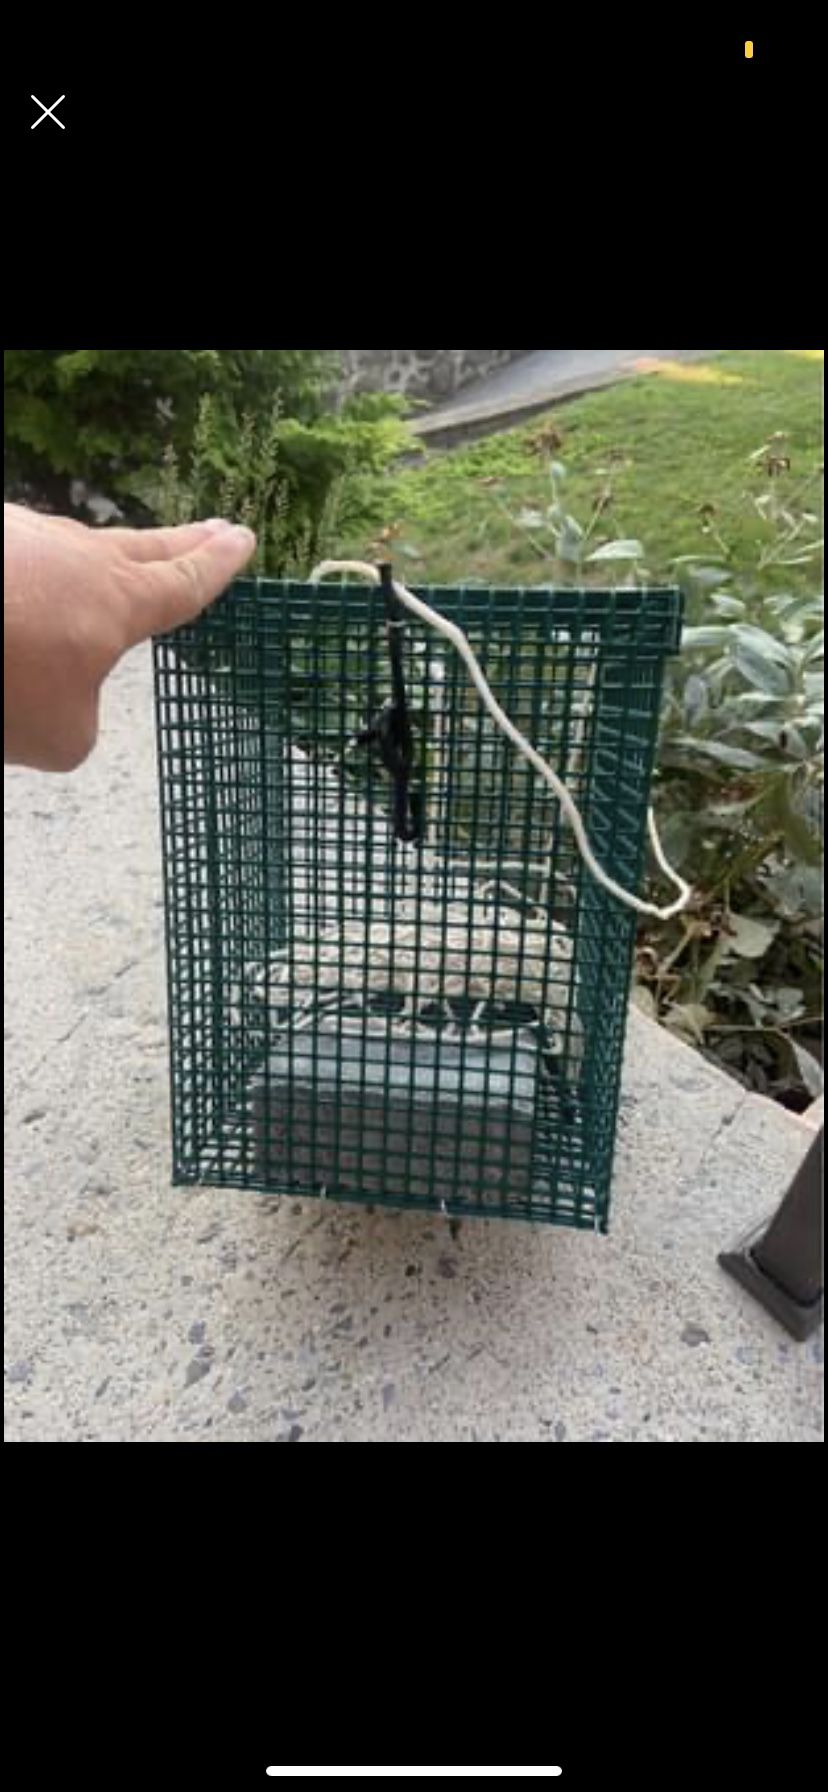 Weighted Clam Chum Cage For Fishing